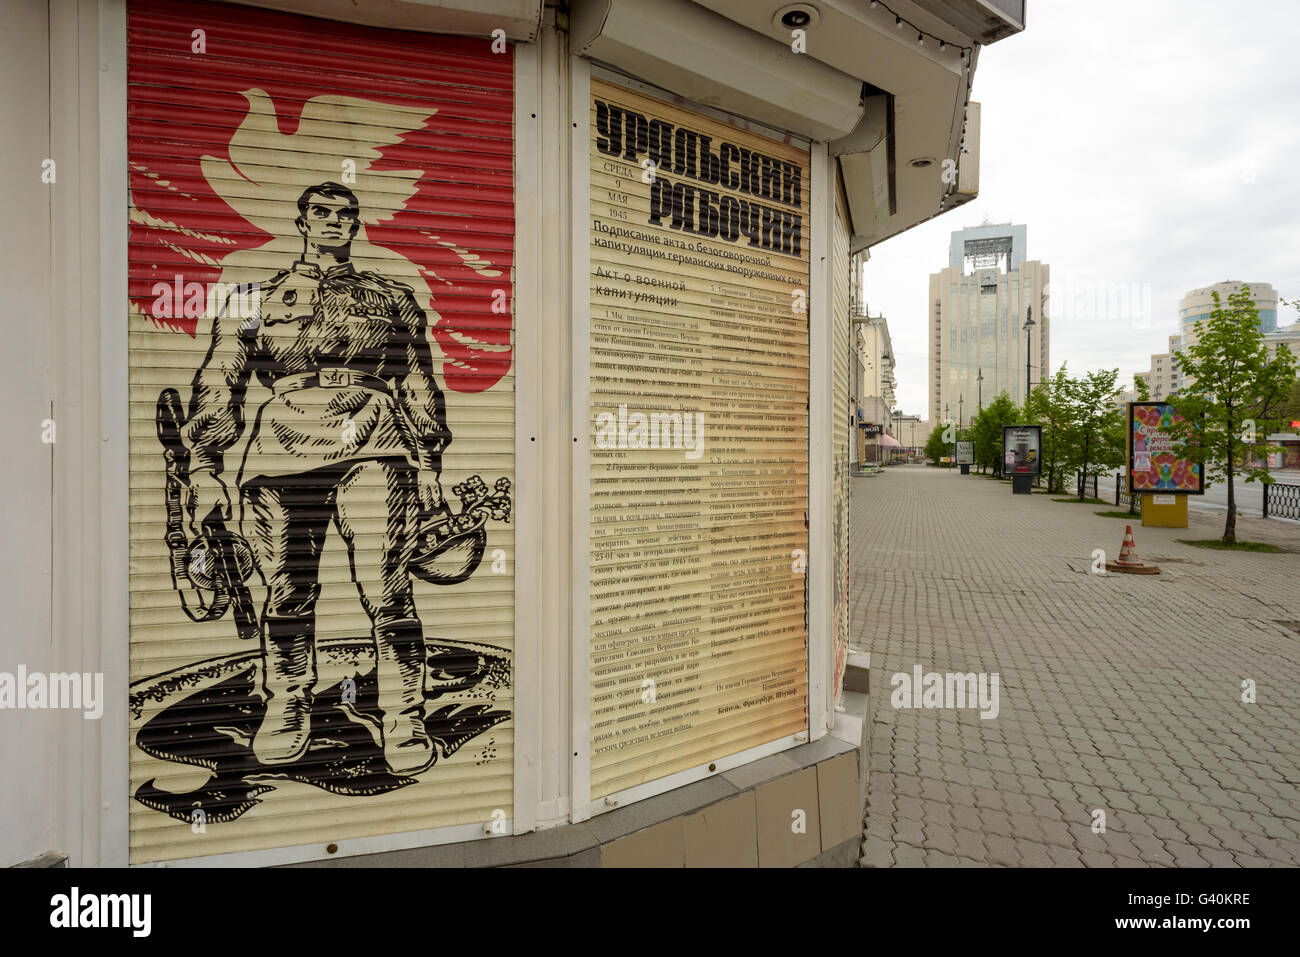 9th of May Victory Day posters and adverts on Sverdlova Street in Yekerterinburg - Stock Image